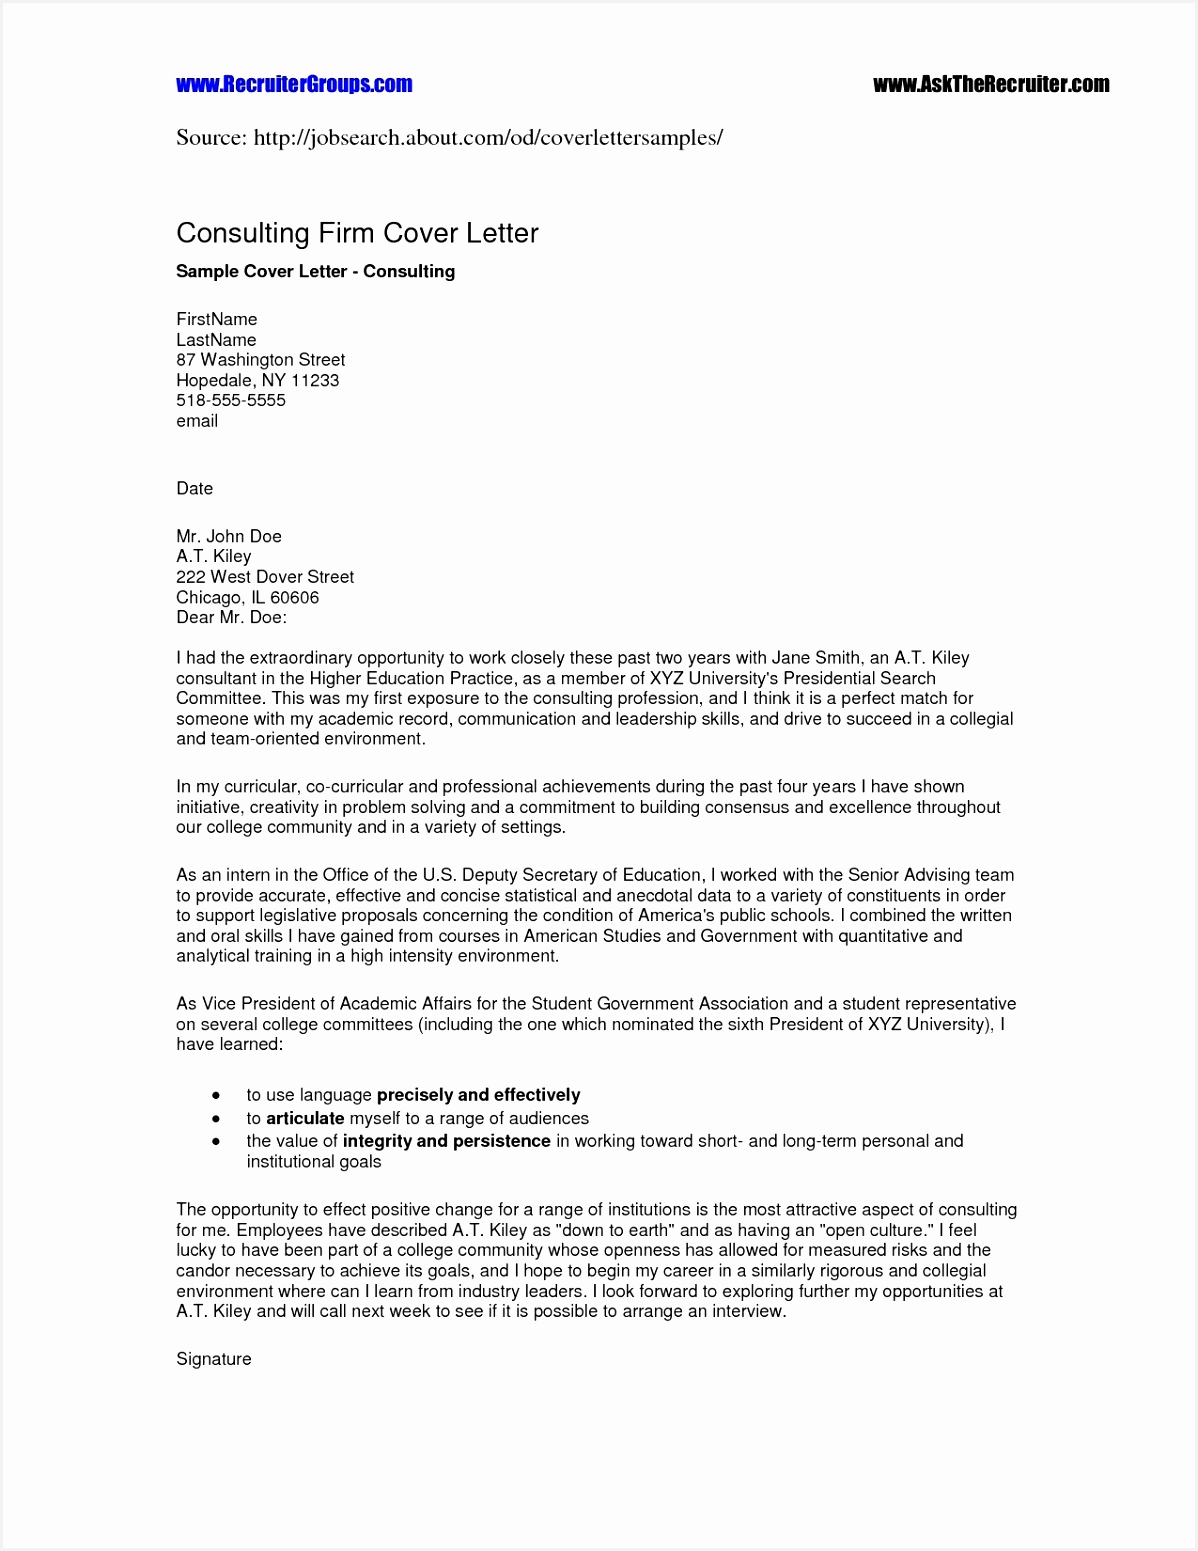 Doorman Cover Letter Unique Best Letter Resignation Samples Template Sample Teacher Cover Gallery Doorman Cover 15511198ygsle